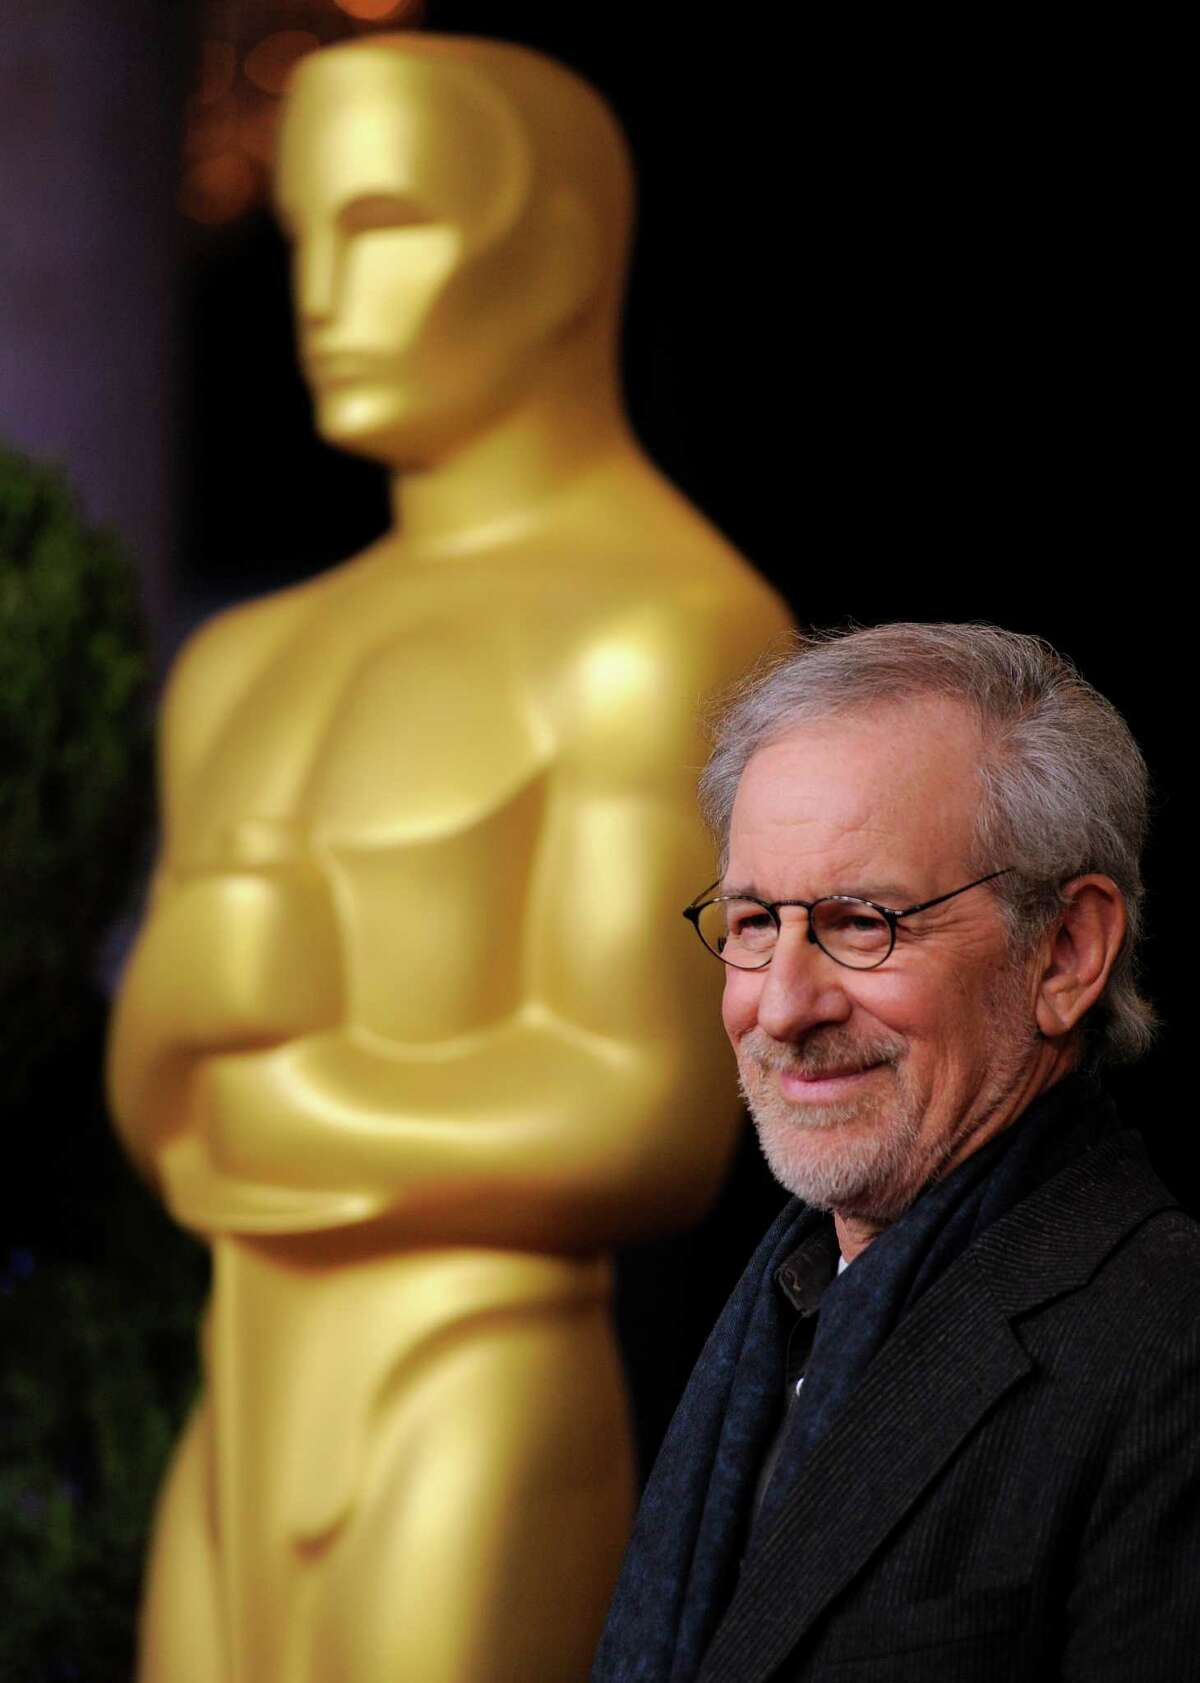 """Steven Spielberg, nominated for directing and best picture for """"Lincoln,"""" arrives at the 85th Academy Awards Nominees Luncheon at the Beverly Hilton Hotel on Monday, Feb. 4, 2013, in Beverly Hills, Calif. (Photo by Chris Pizzello/Invision/AP)"""